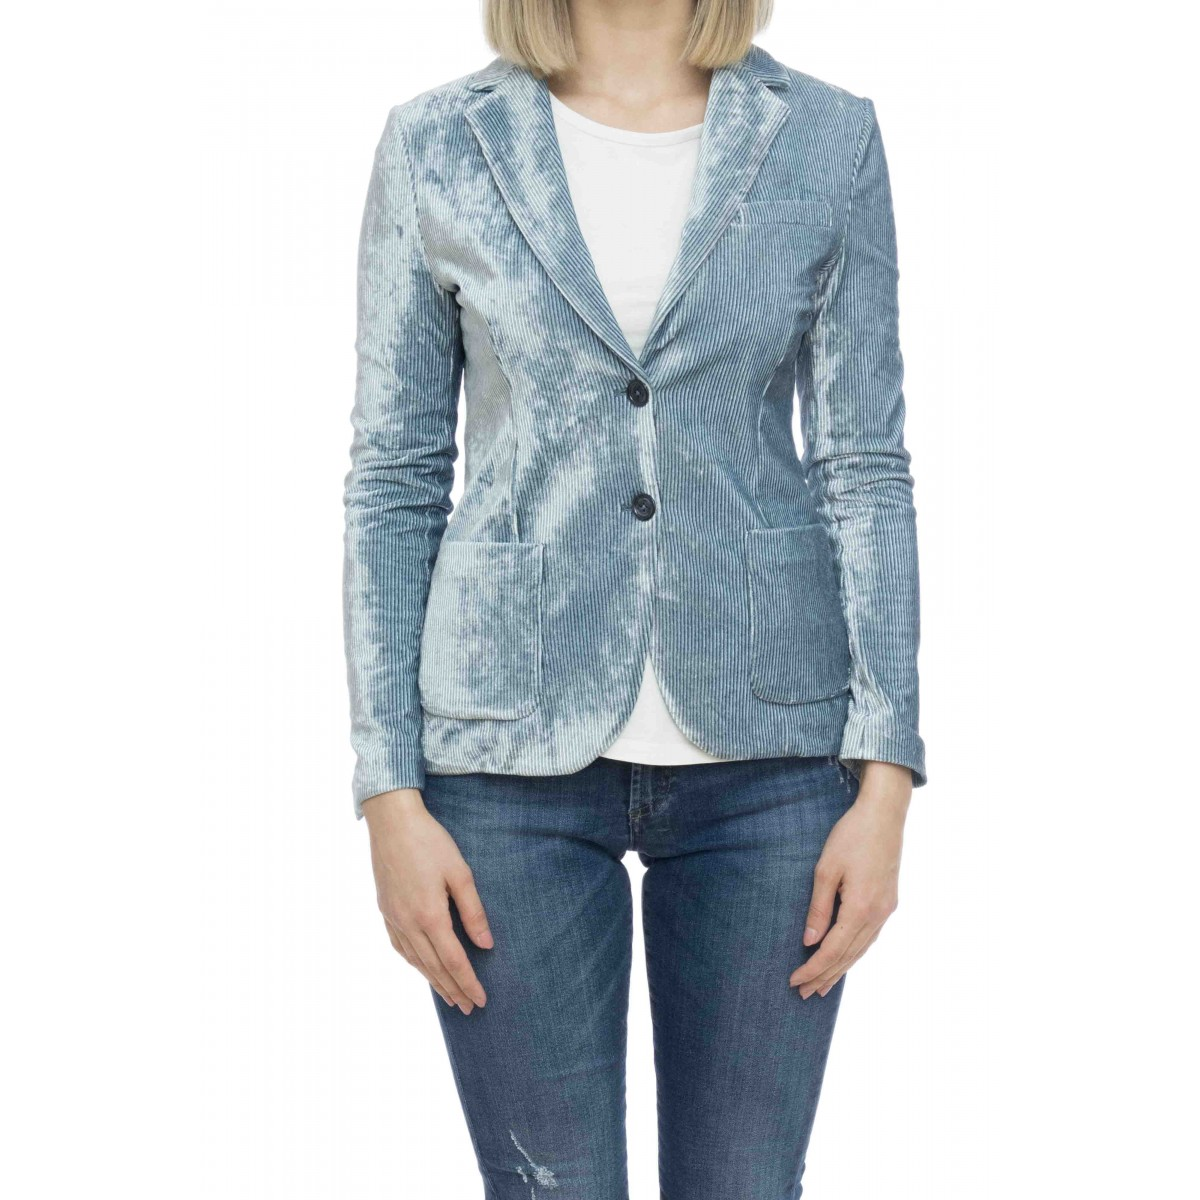 Giacca donna - Fd1343 giacca jersey velluto rigato